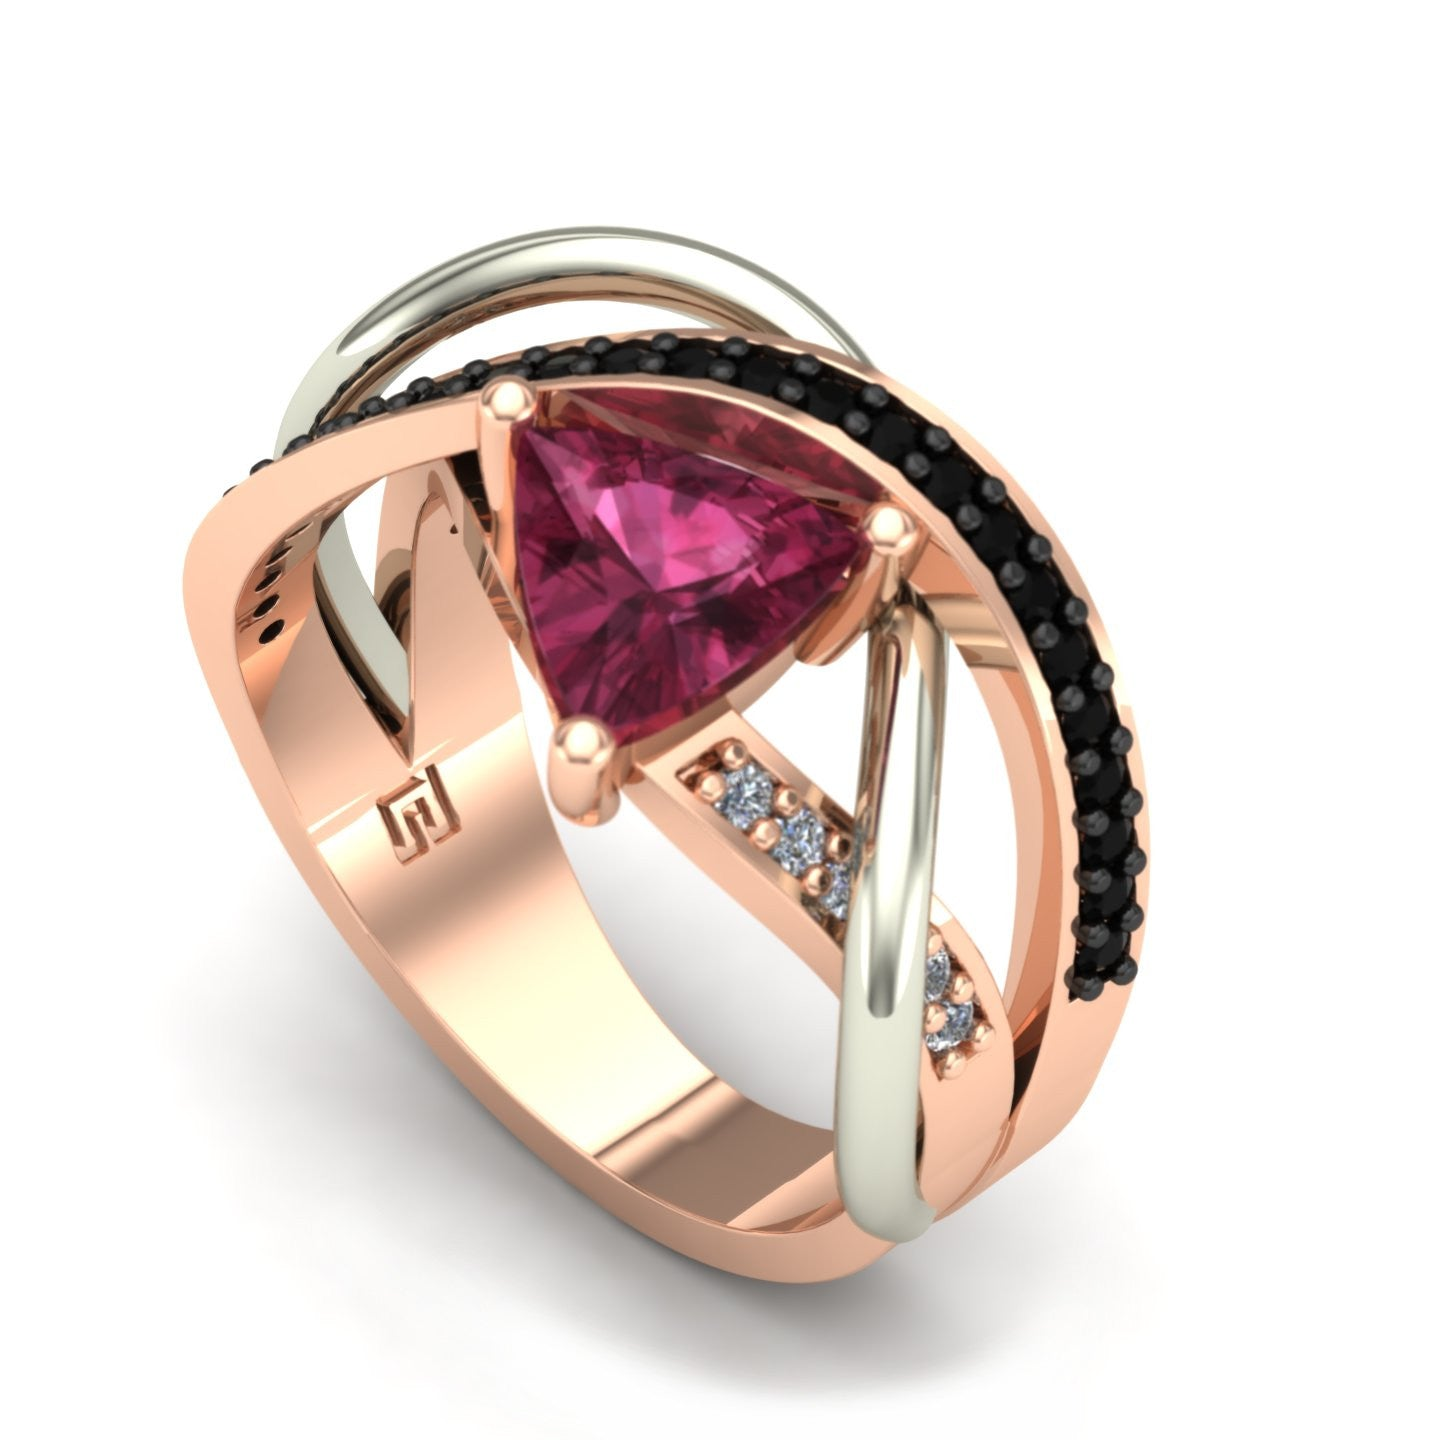 Pink tourmaline and diamond abstract ring in 14k rose and white gold